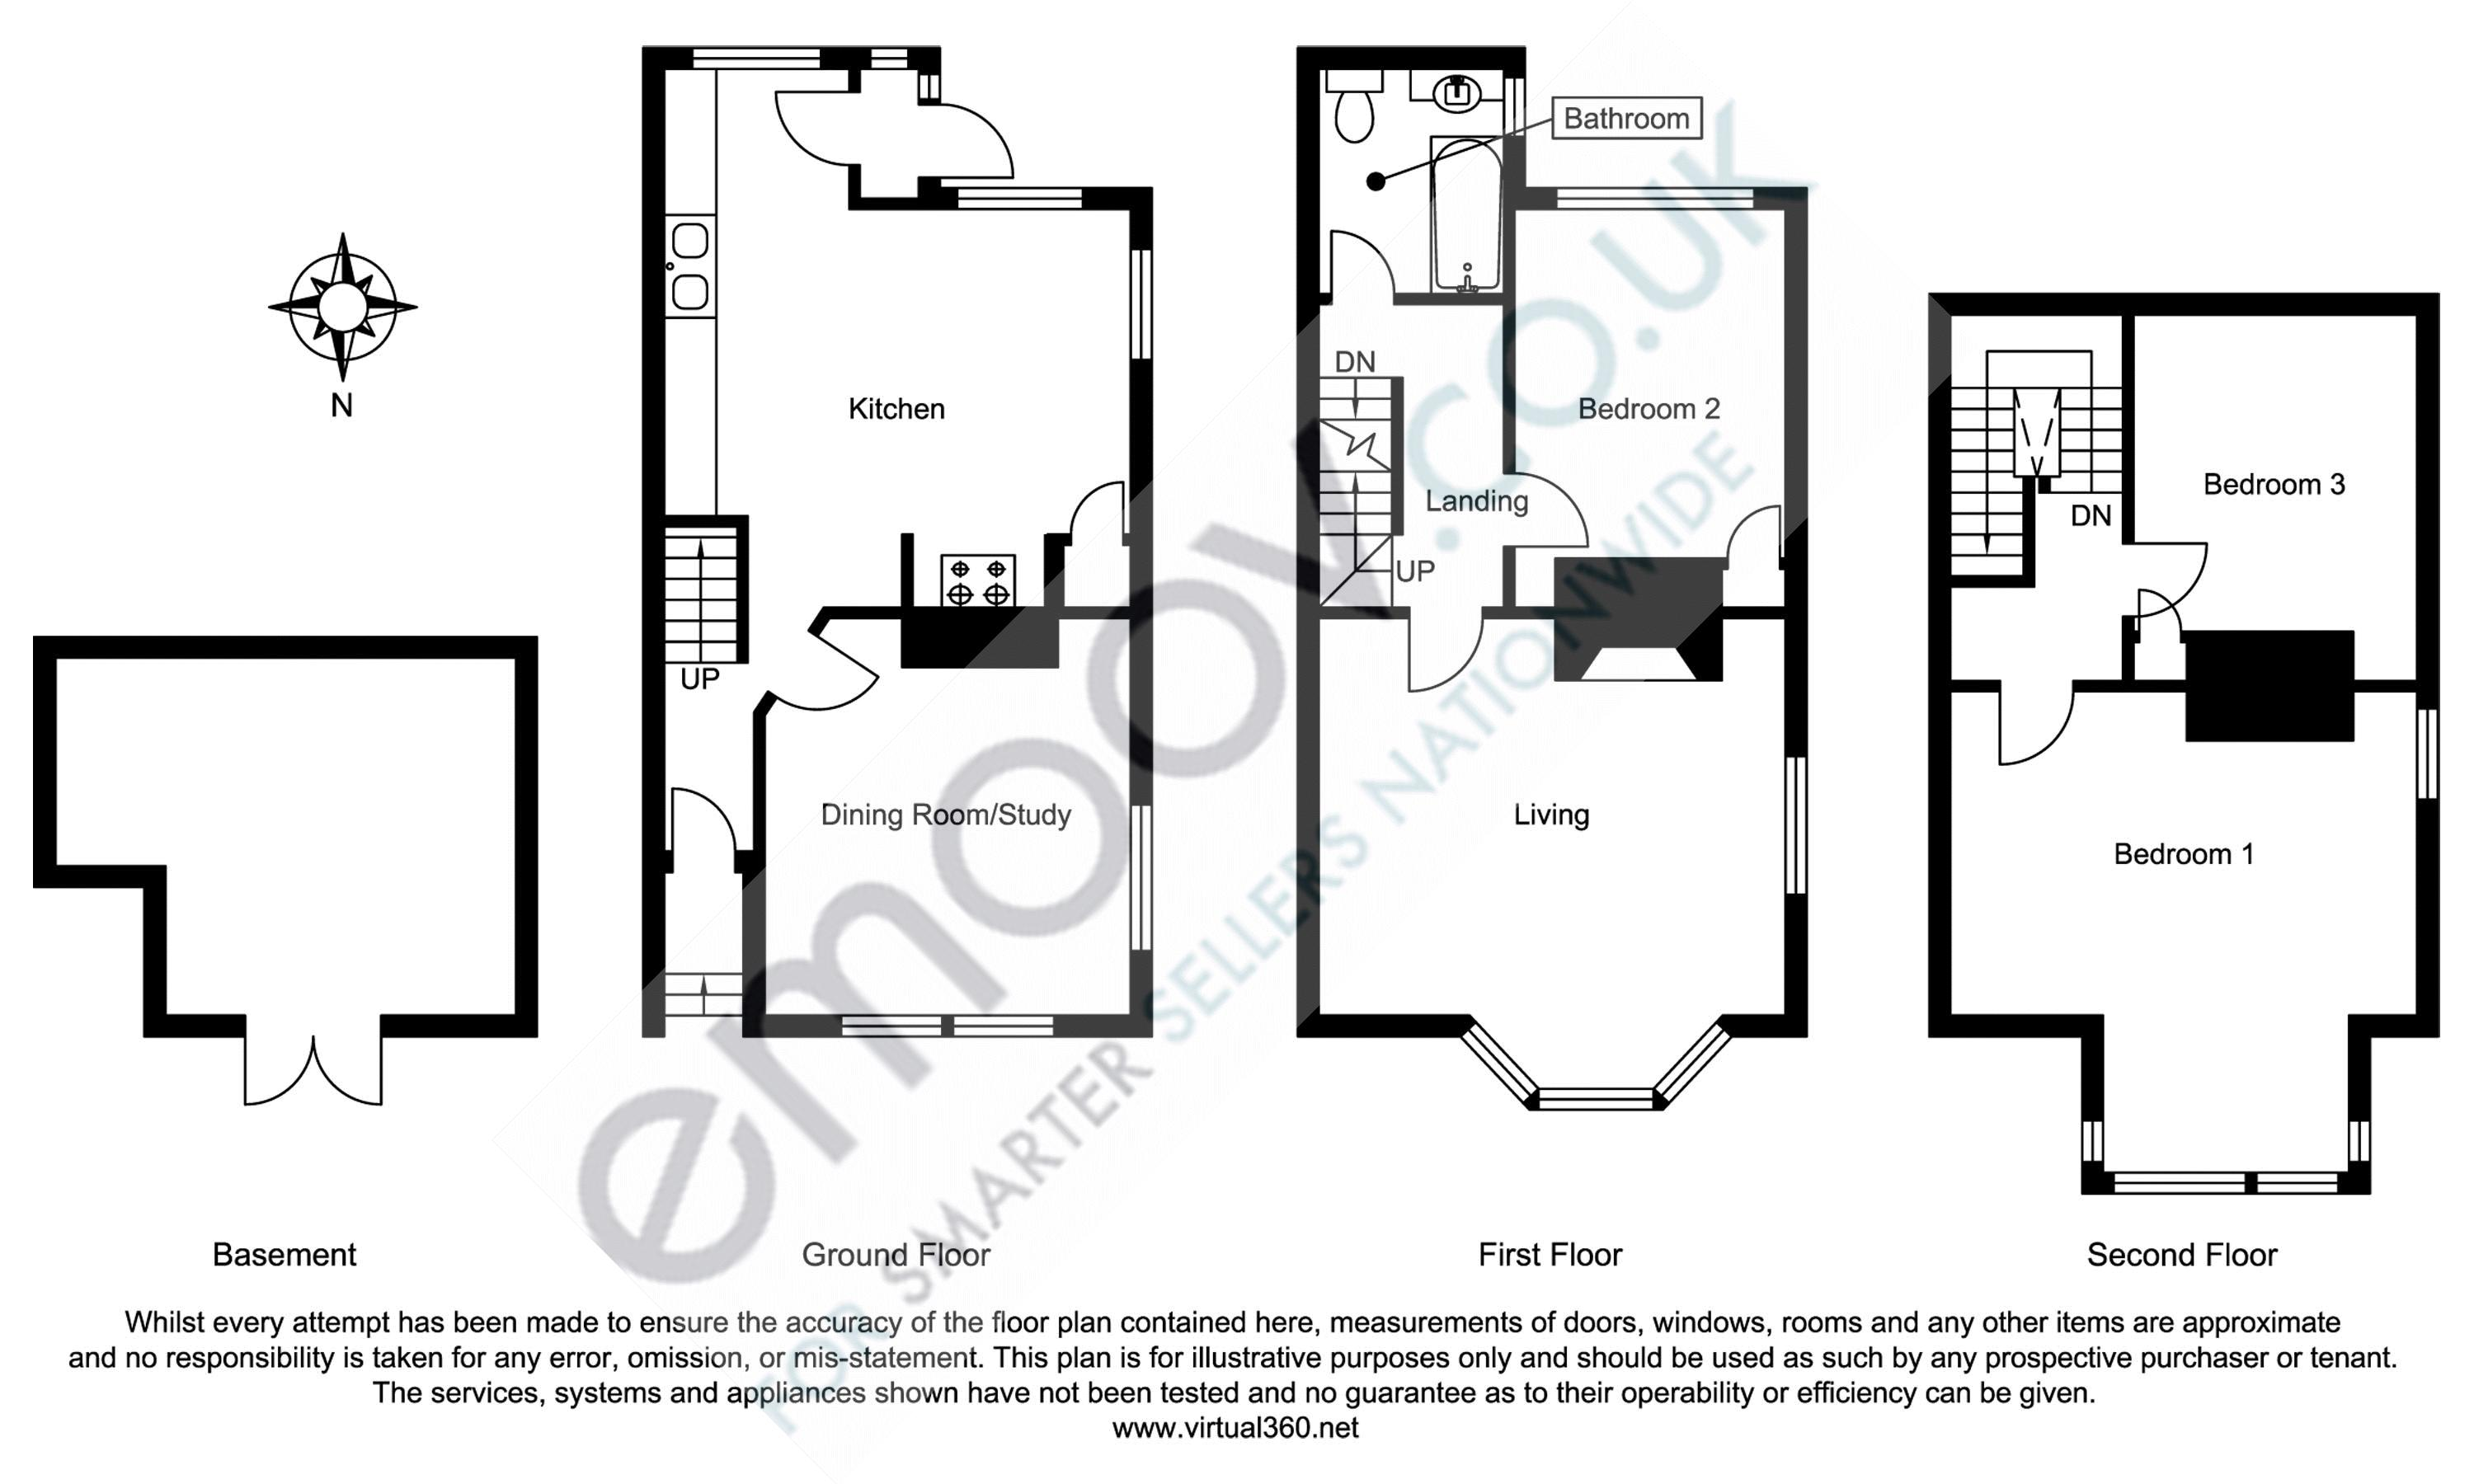 Mount Pleasant Lane, Swanage floor plan